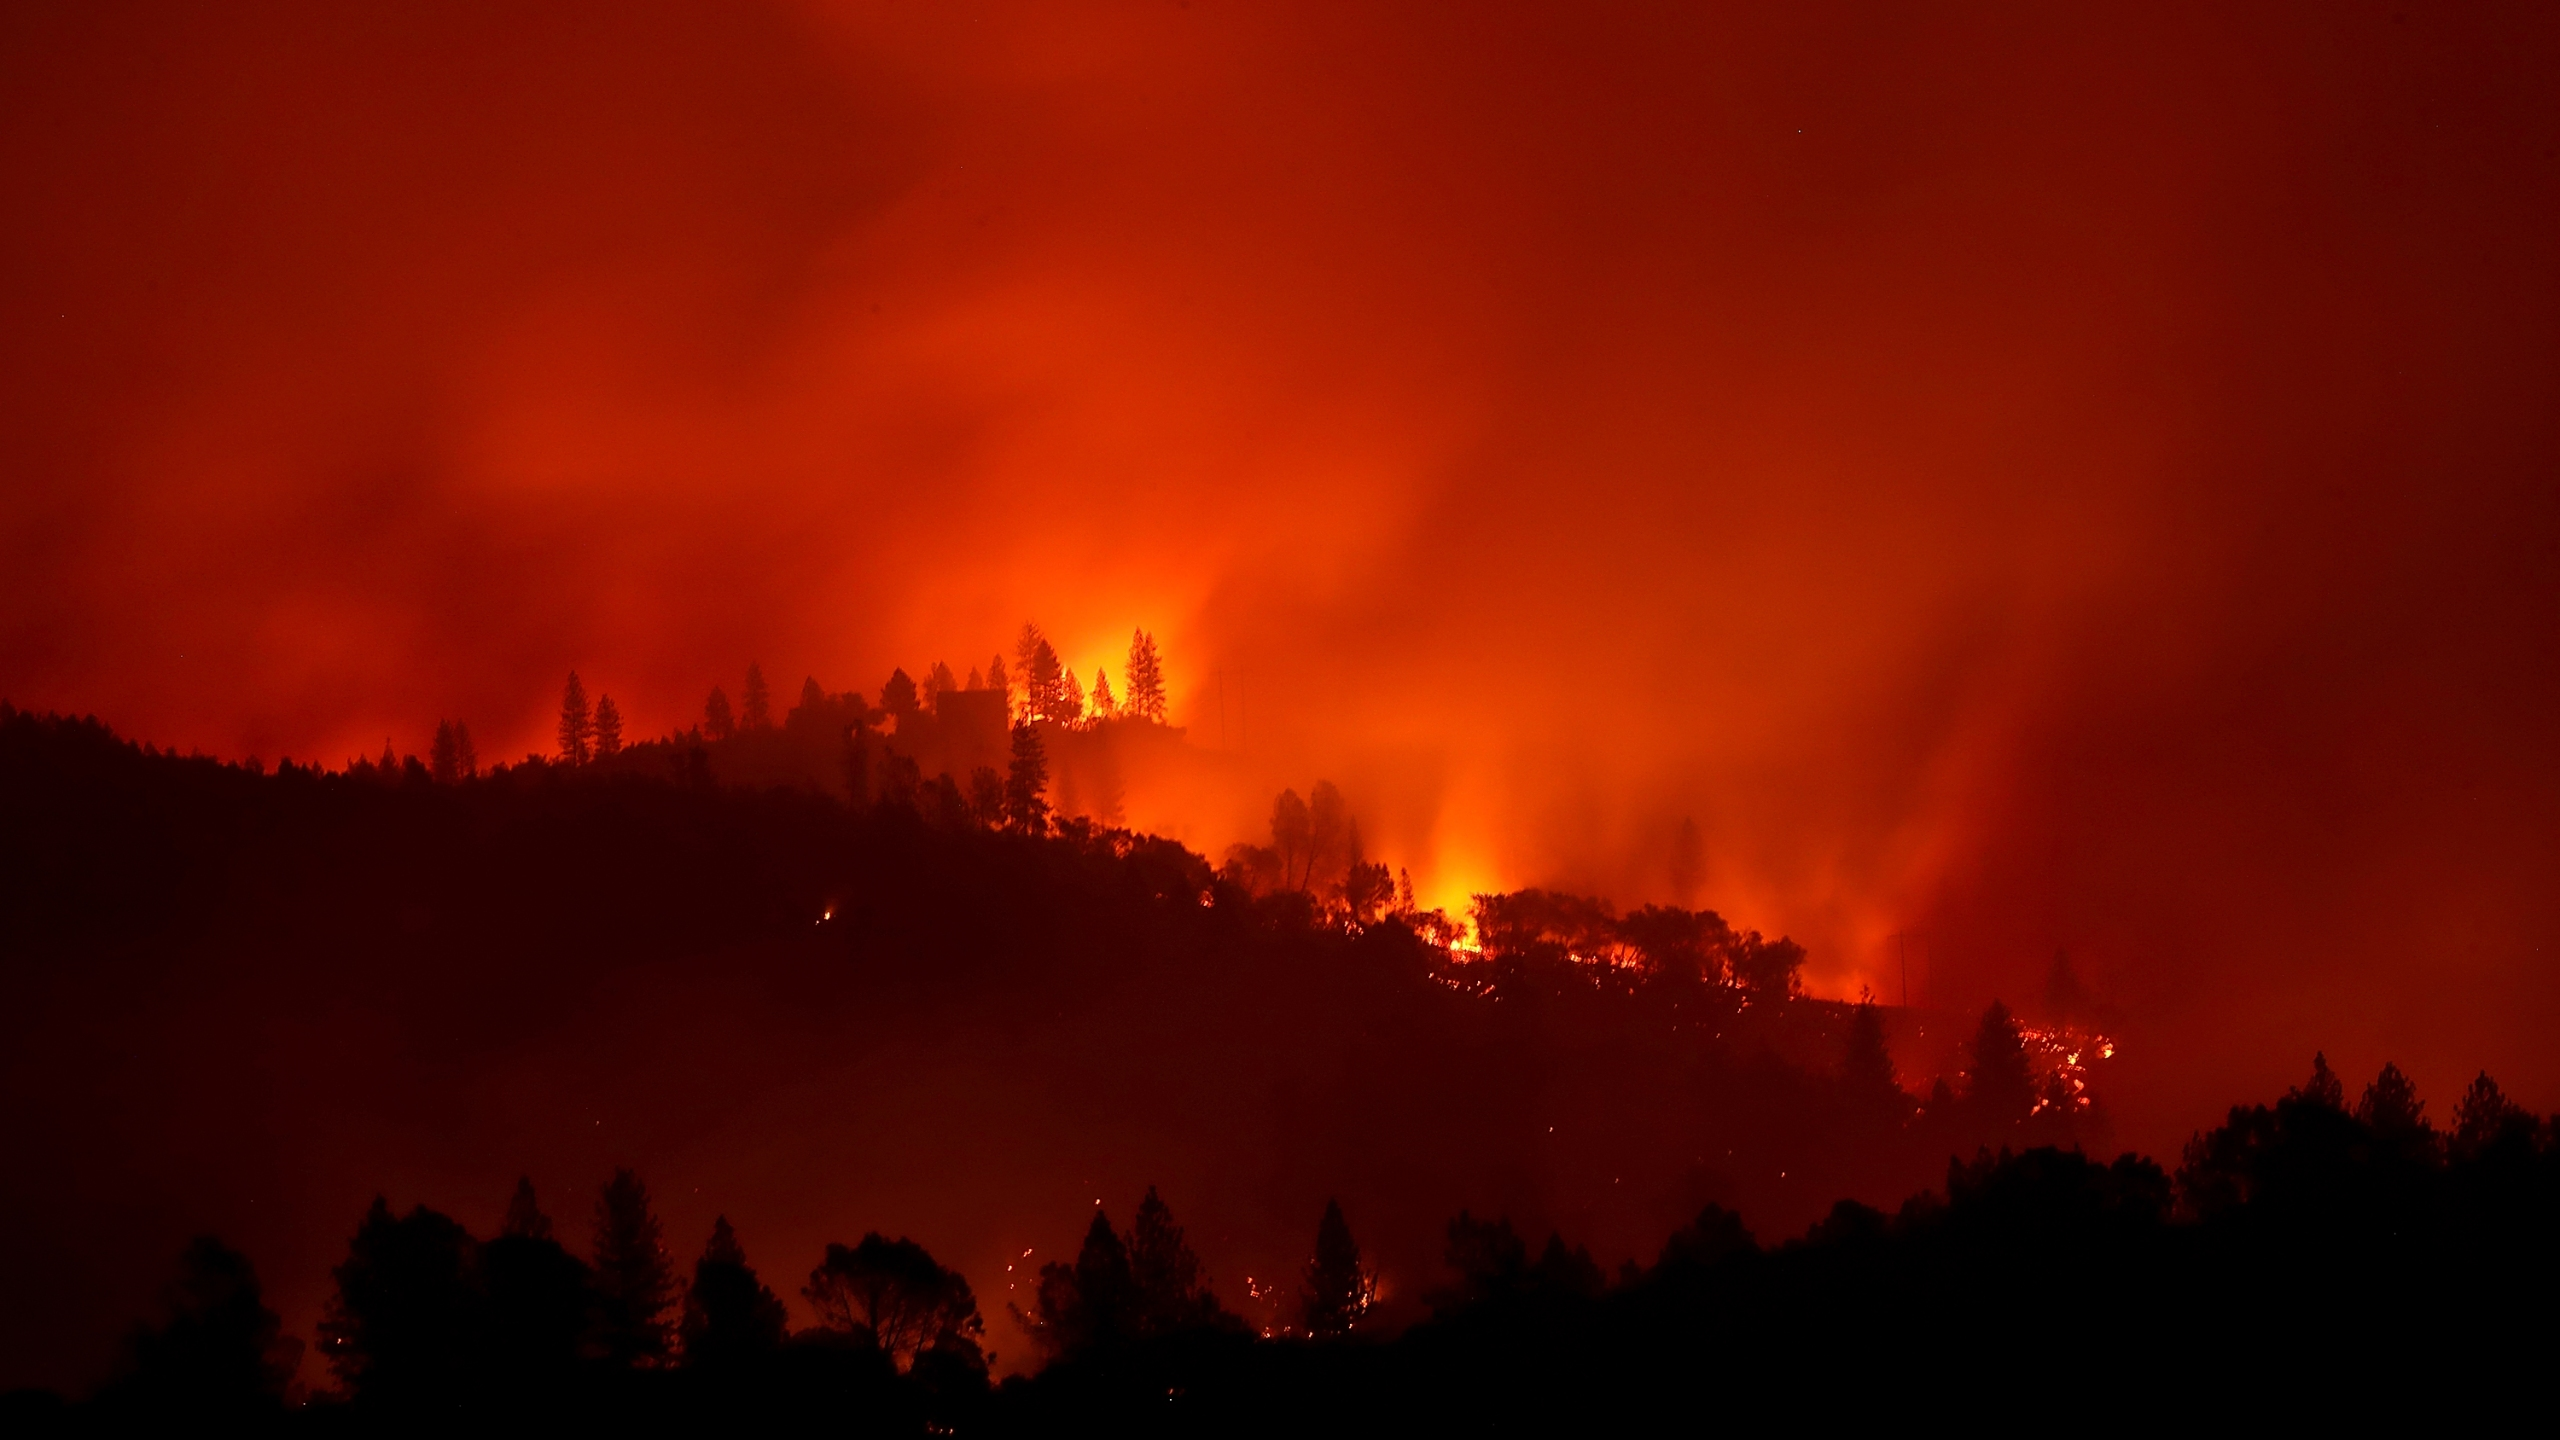 The Camp Fire burns in the hills on Nov. 10, 2018, near Ororville, California. (Credit: Justin Sullivan/Getty Images)